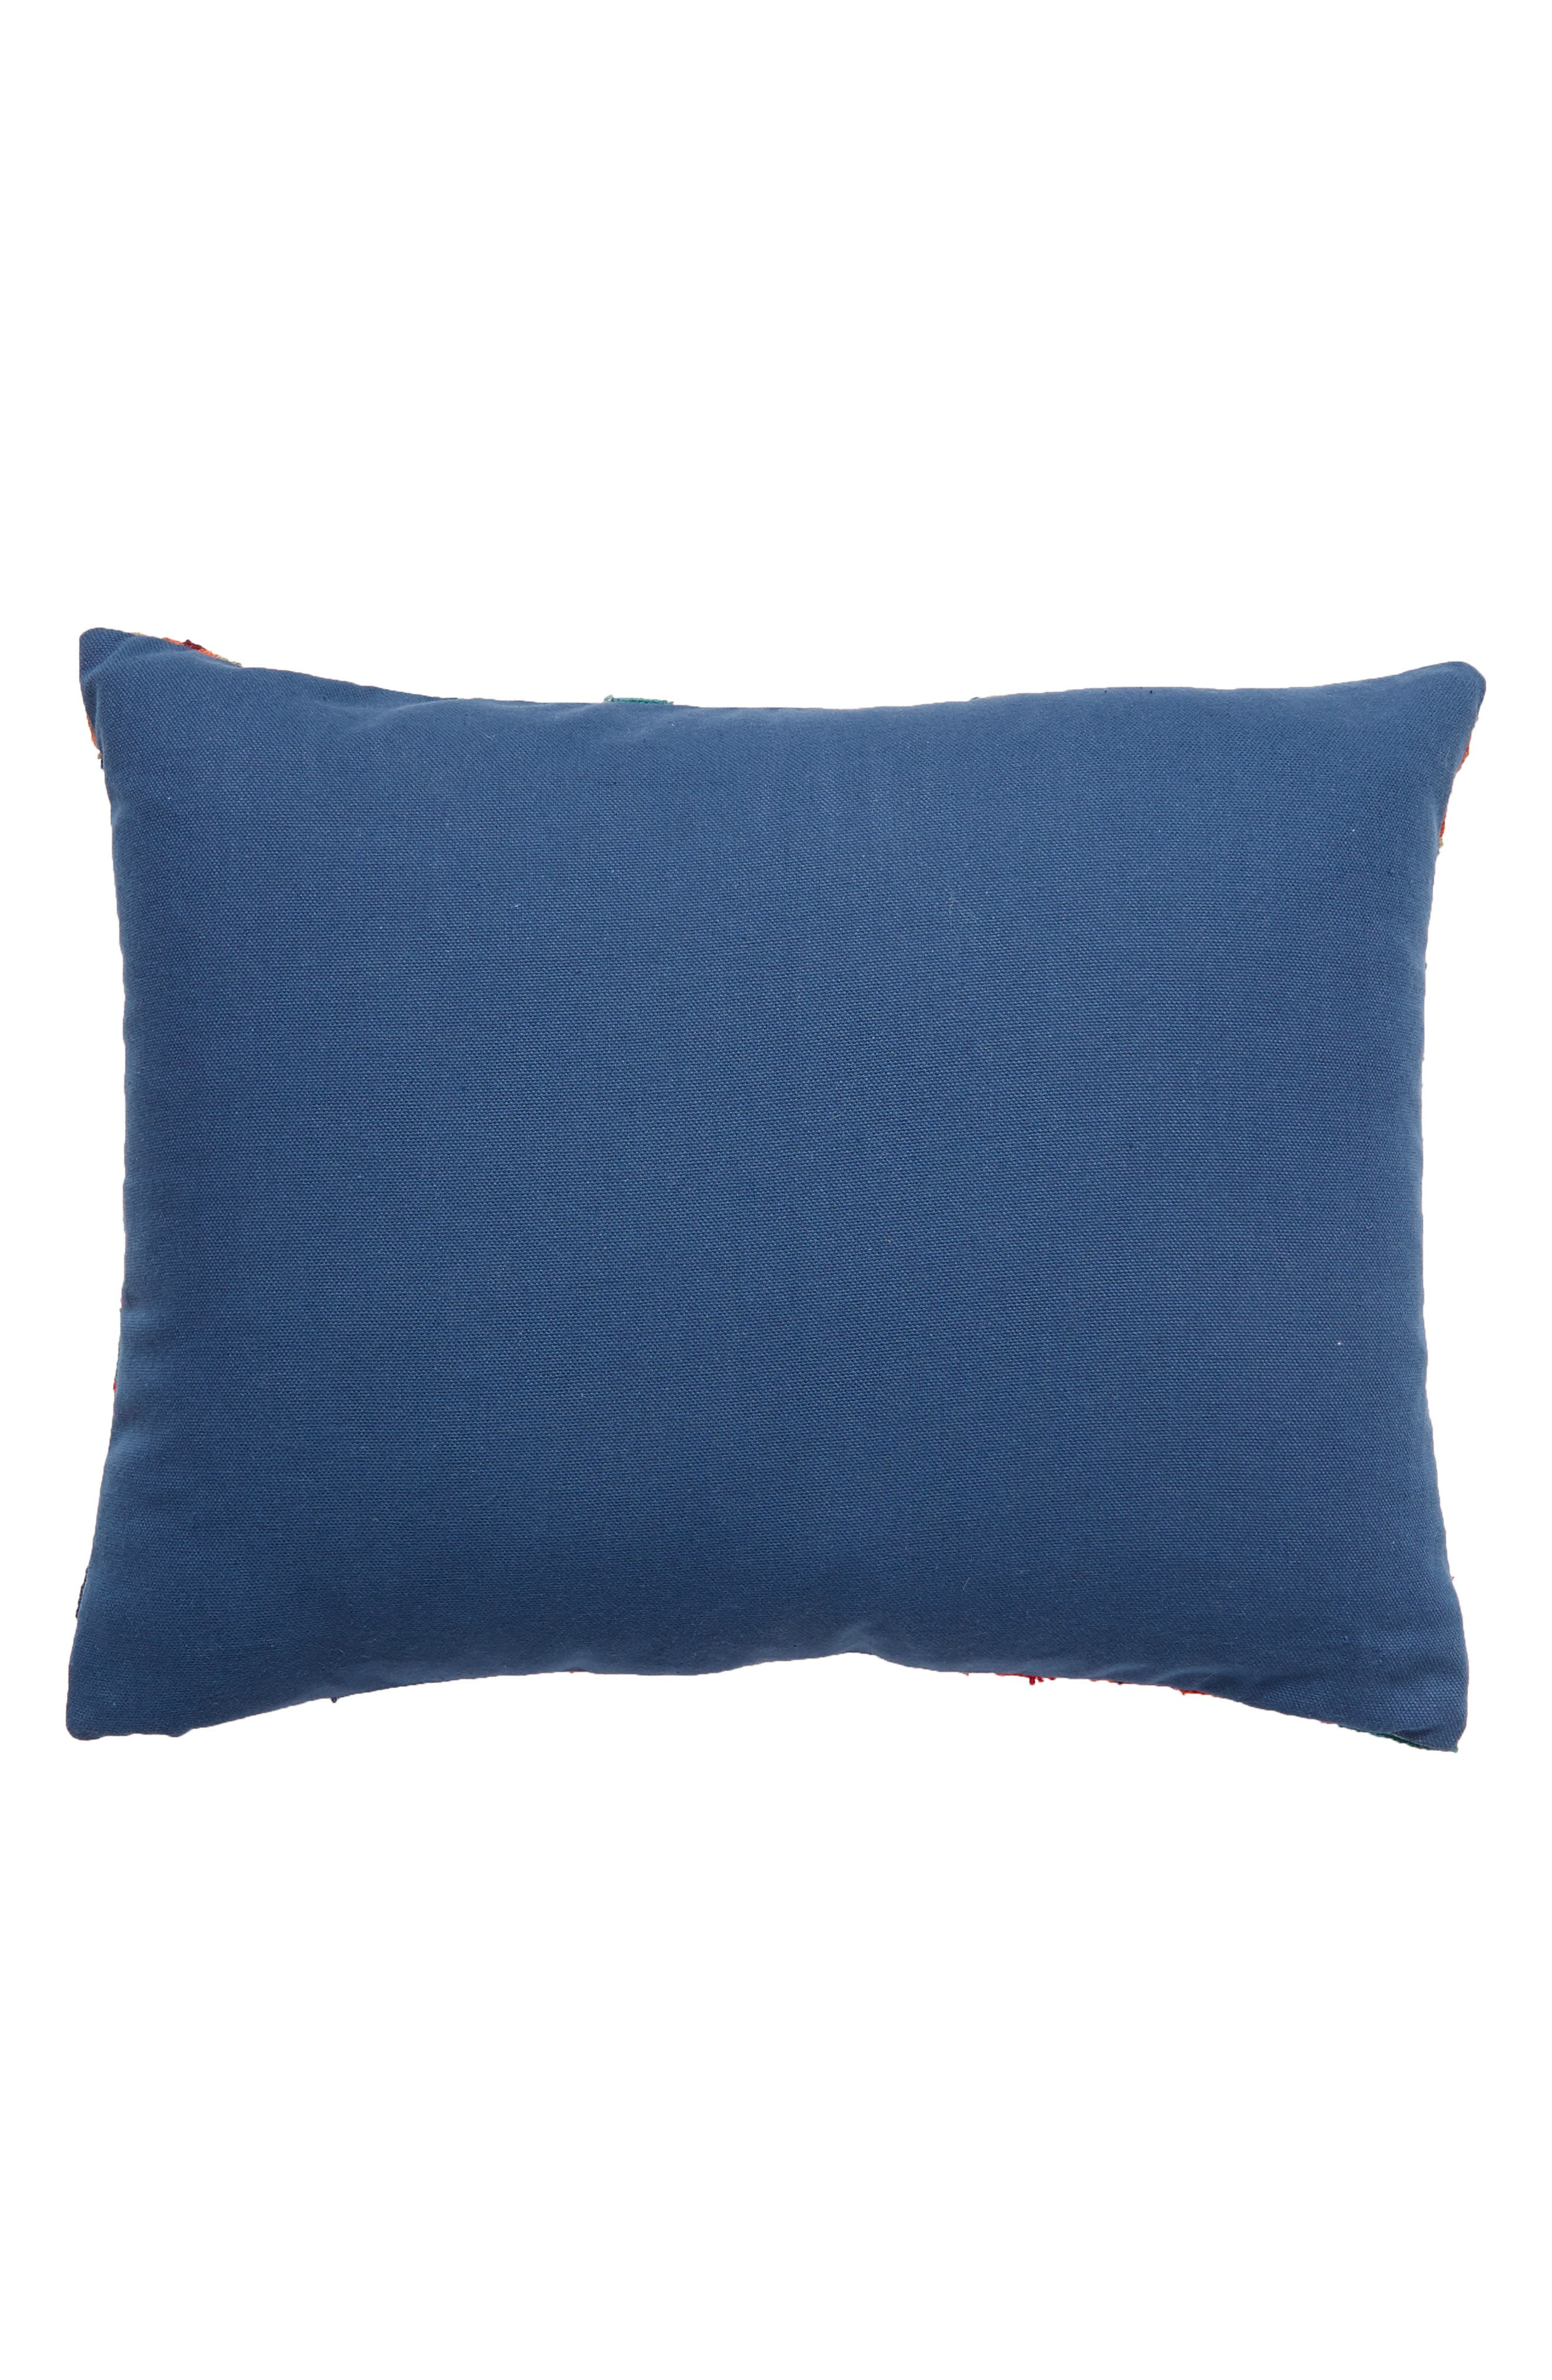 Carla Accent Pillow,                             Alternate thumbnail 2, color,                             Blue